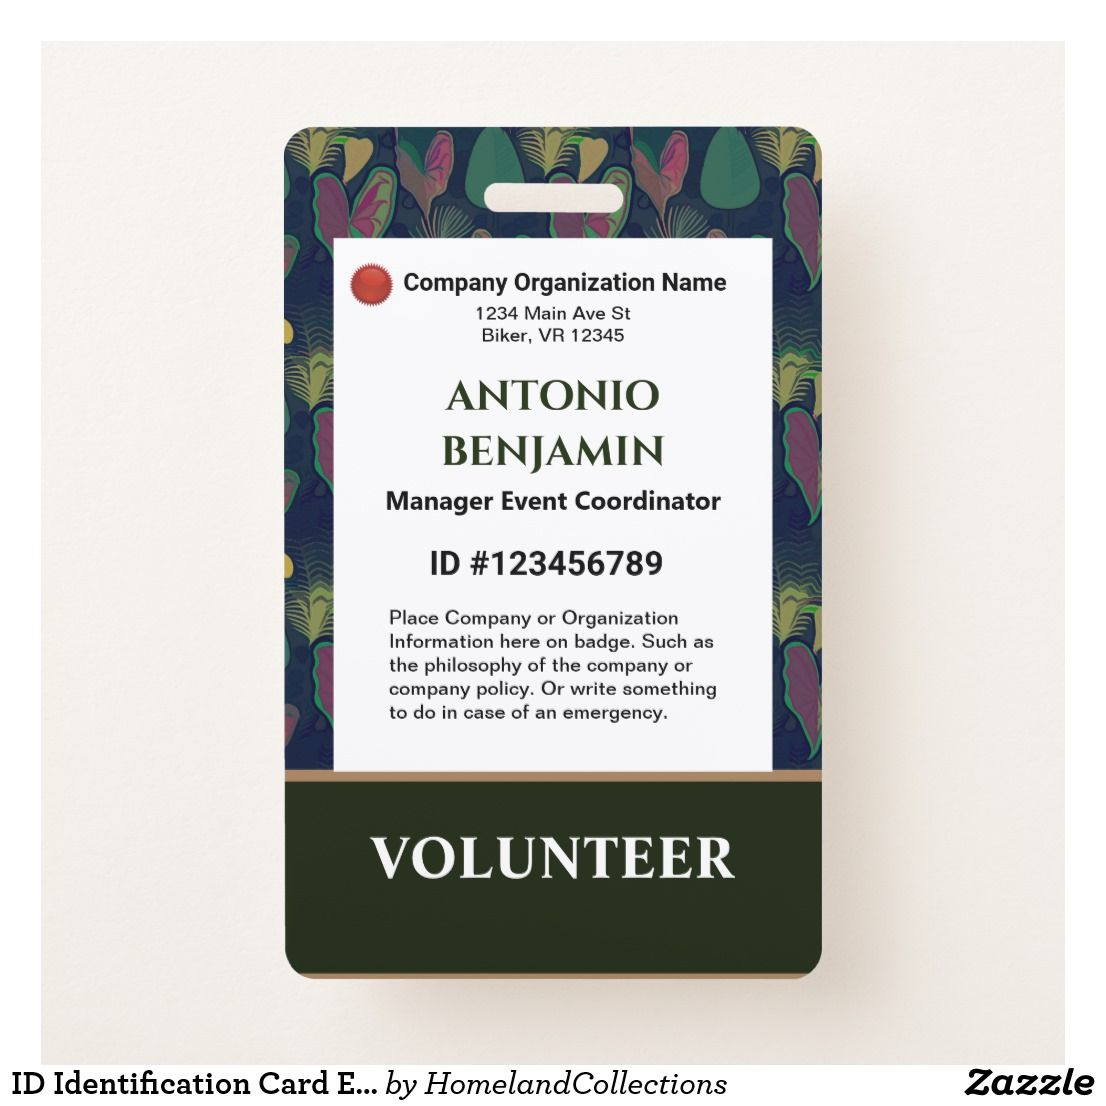 Id Identification Card Photo Business Corporate Badge Zazzle Com Custom Badges Organisation Name Personalized Logo